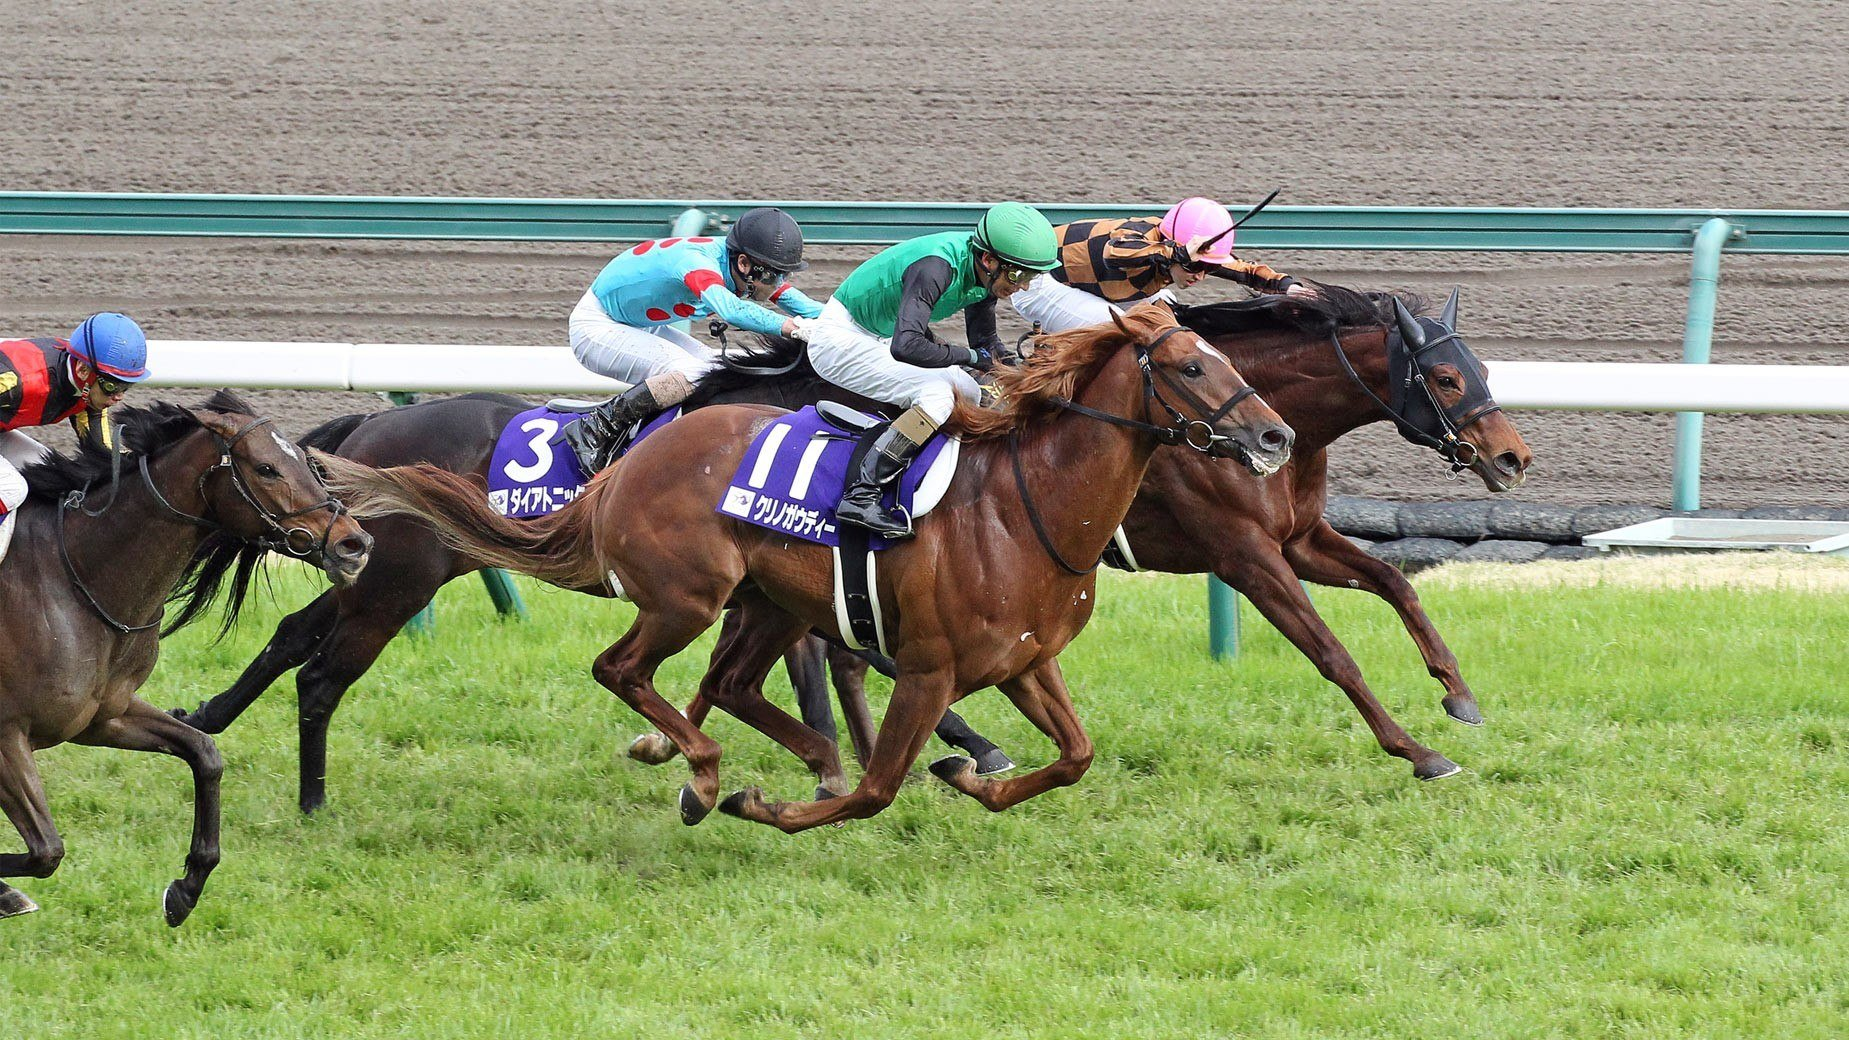 Horse racing betting scandals investments that lower taxable income